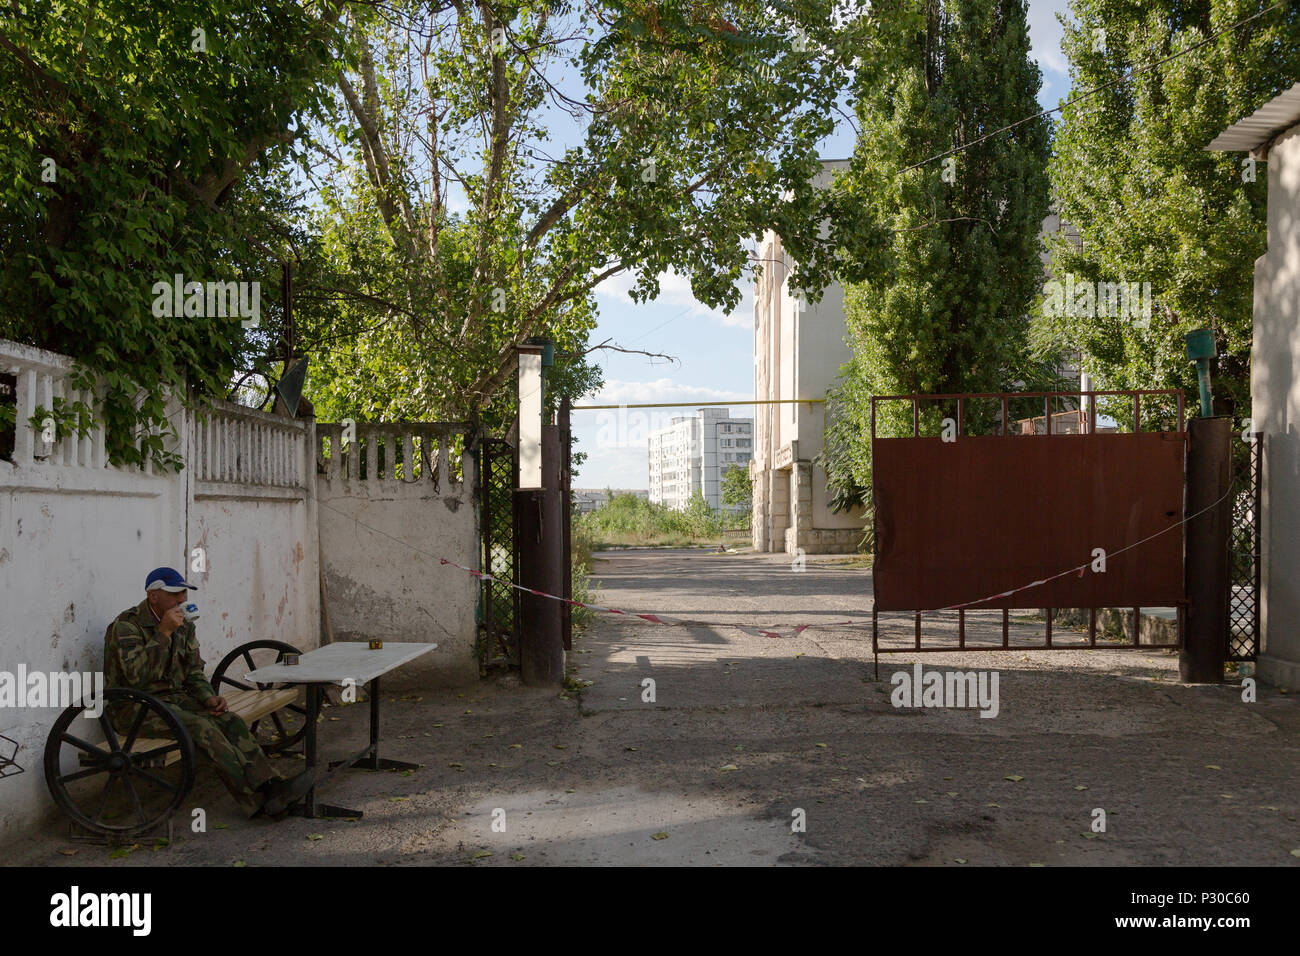 Bender, Moldova, gate to the premises of a closed factory - Stock Image